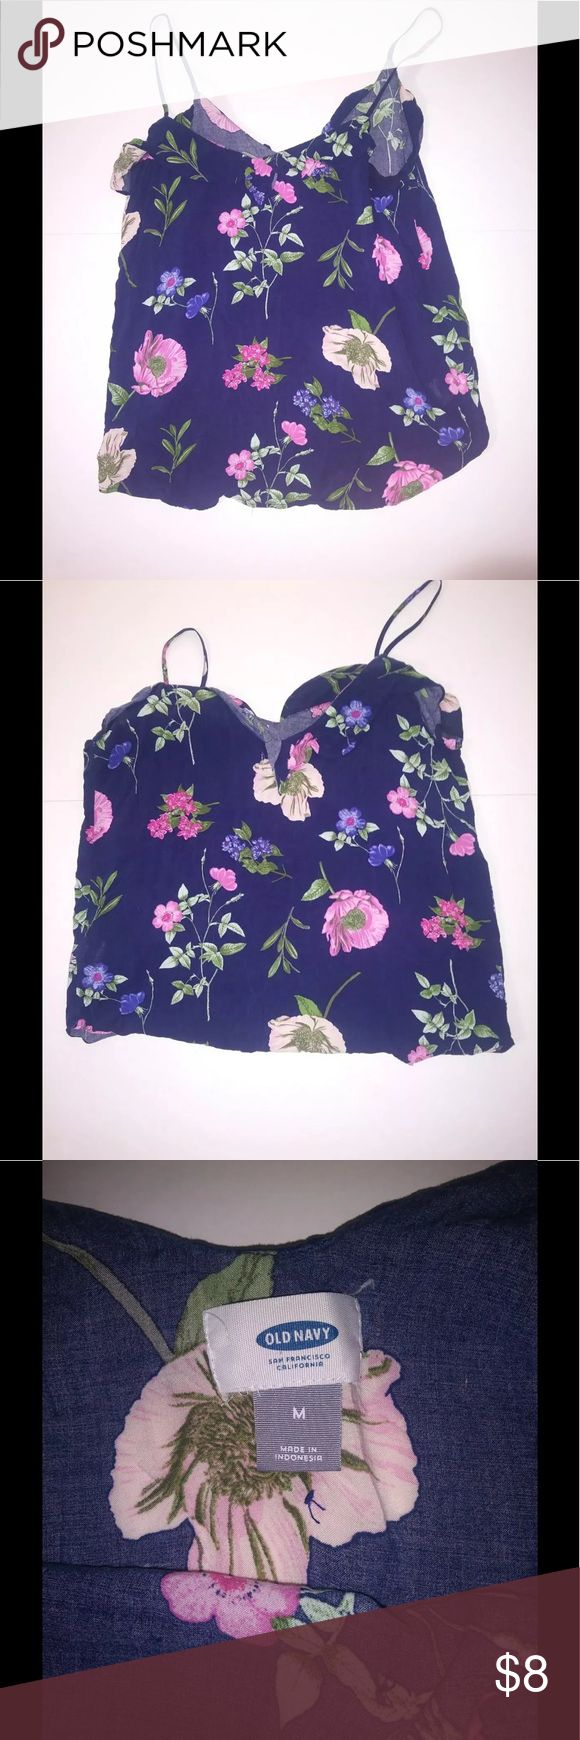 Old Navy Cami tank size M Old Navy Womens Size M Floral Cami Tank Top Shirt. Tropical flowers on Blue Old Navy Tops Camisoles